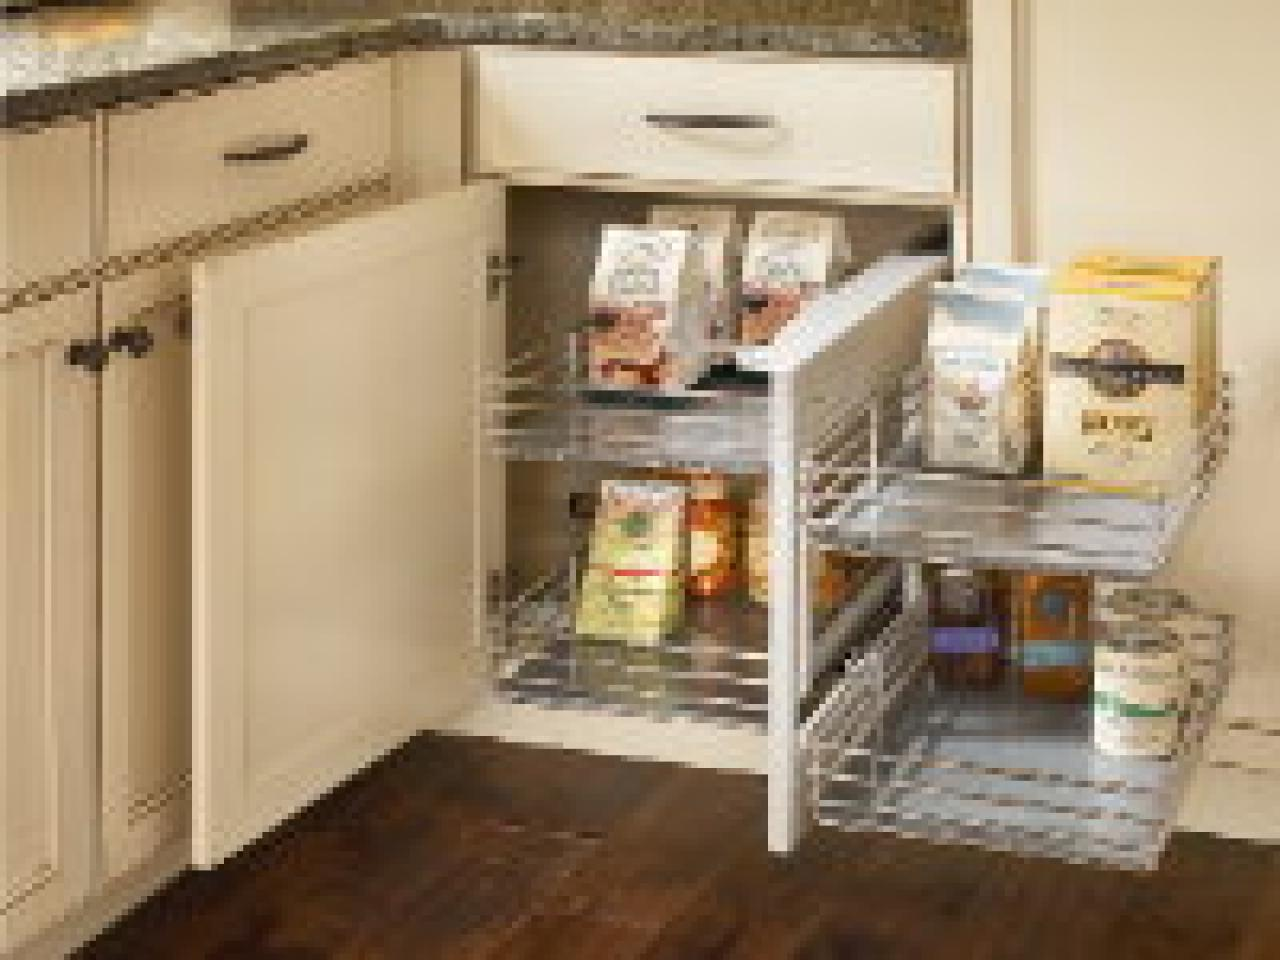 Upgrades put kitchen cabinets to work hgtv for Kitchen cabinet accessories